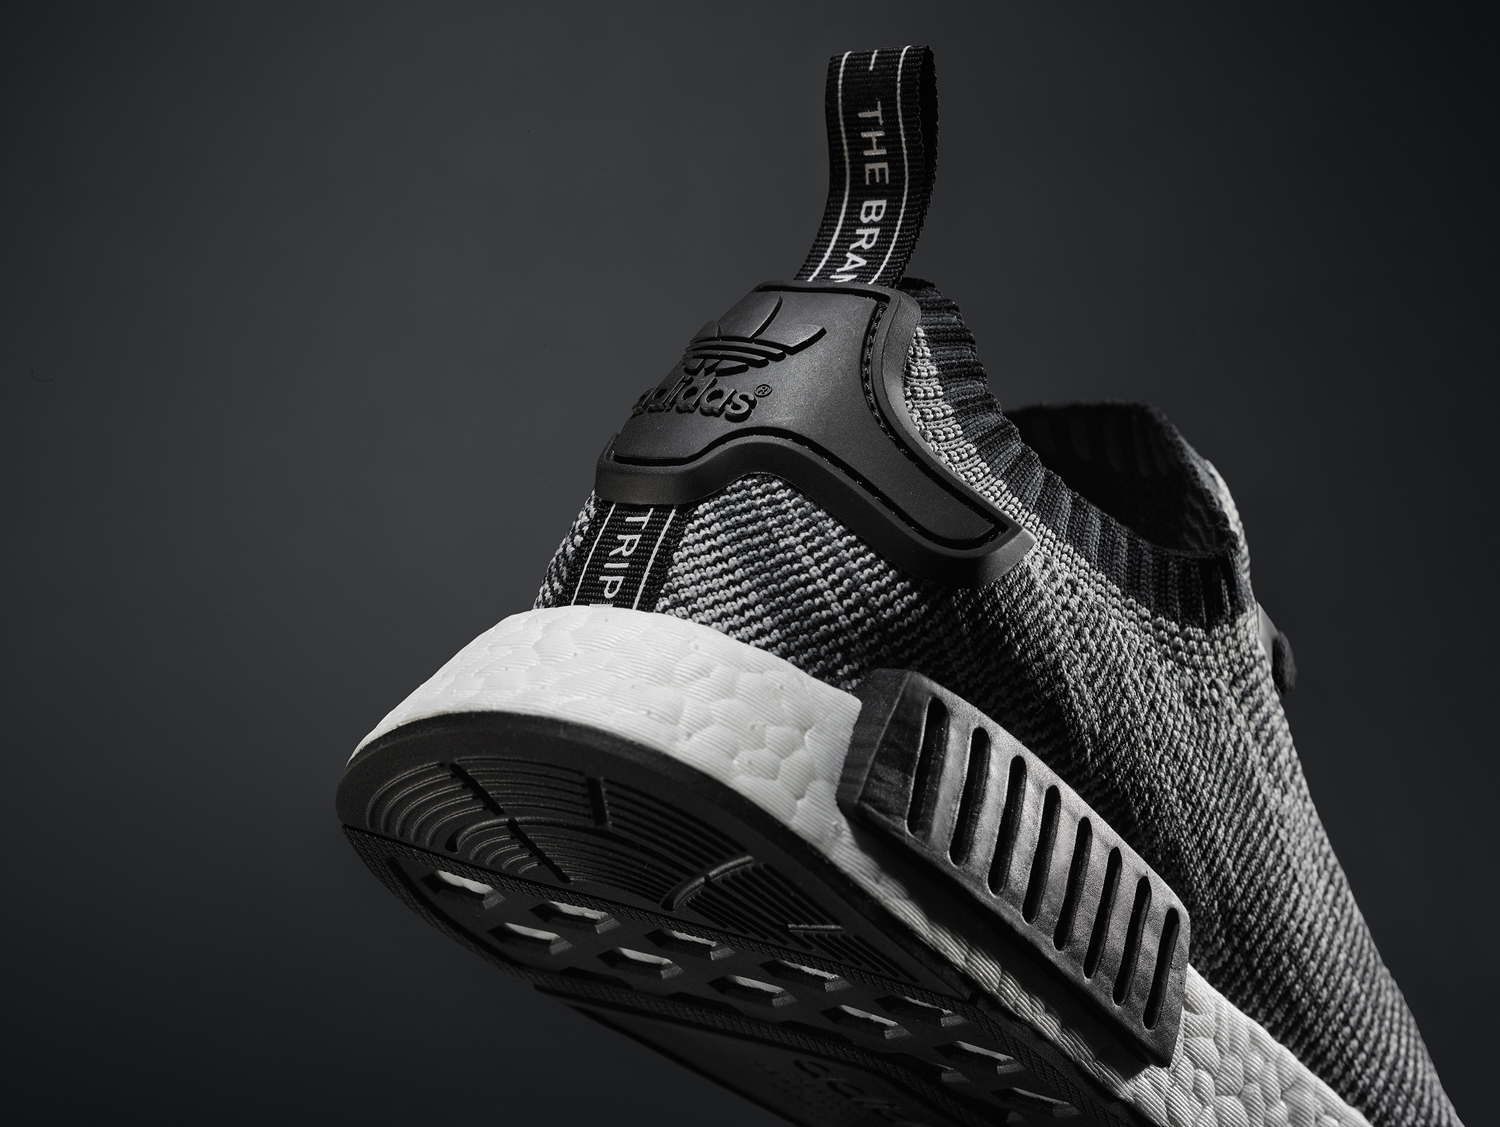 882cce54008 Adidas NMD R1 will drop soon